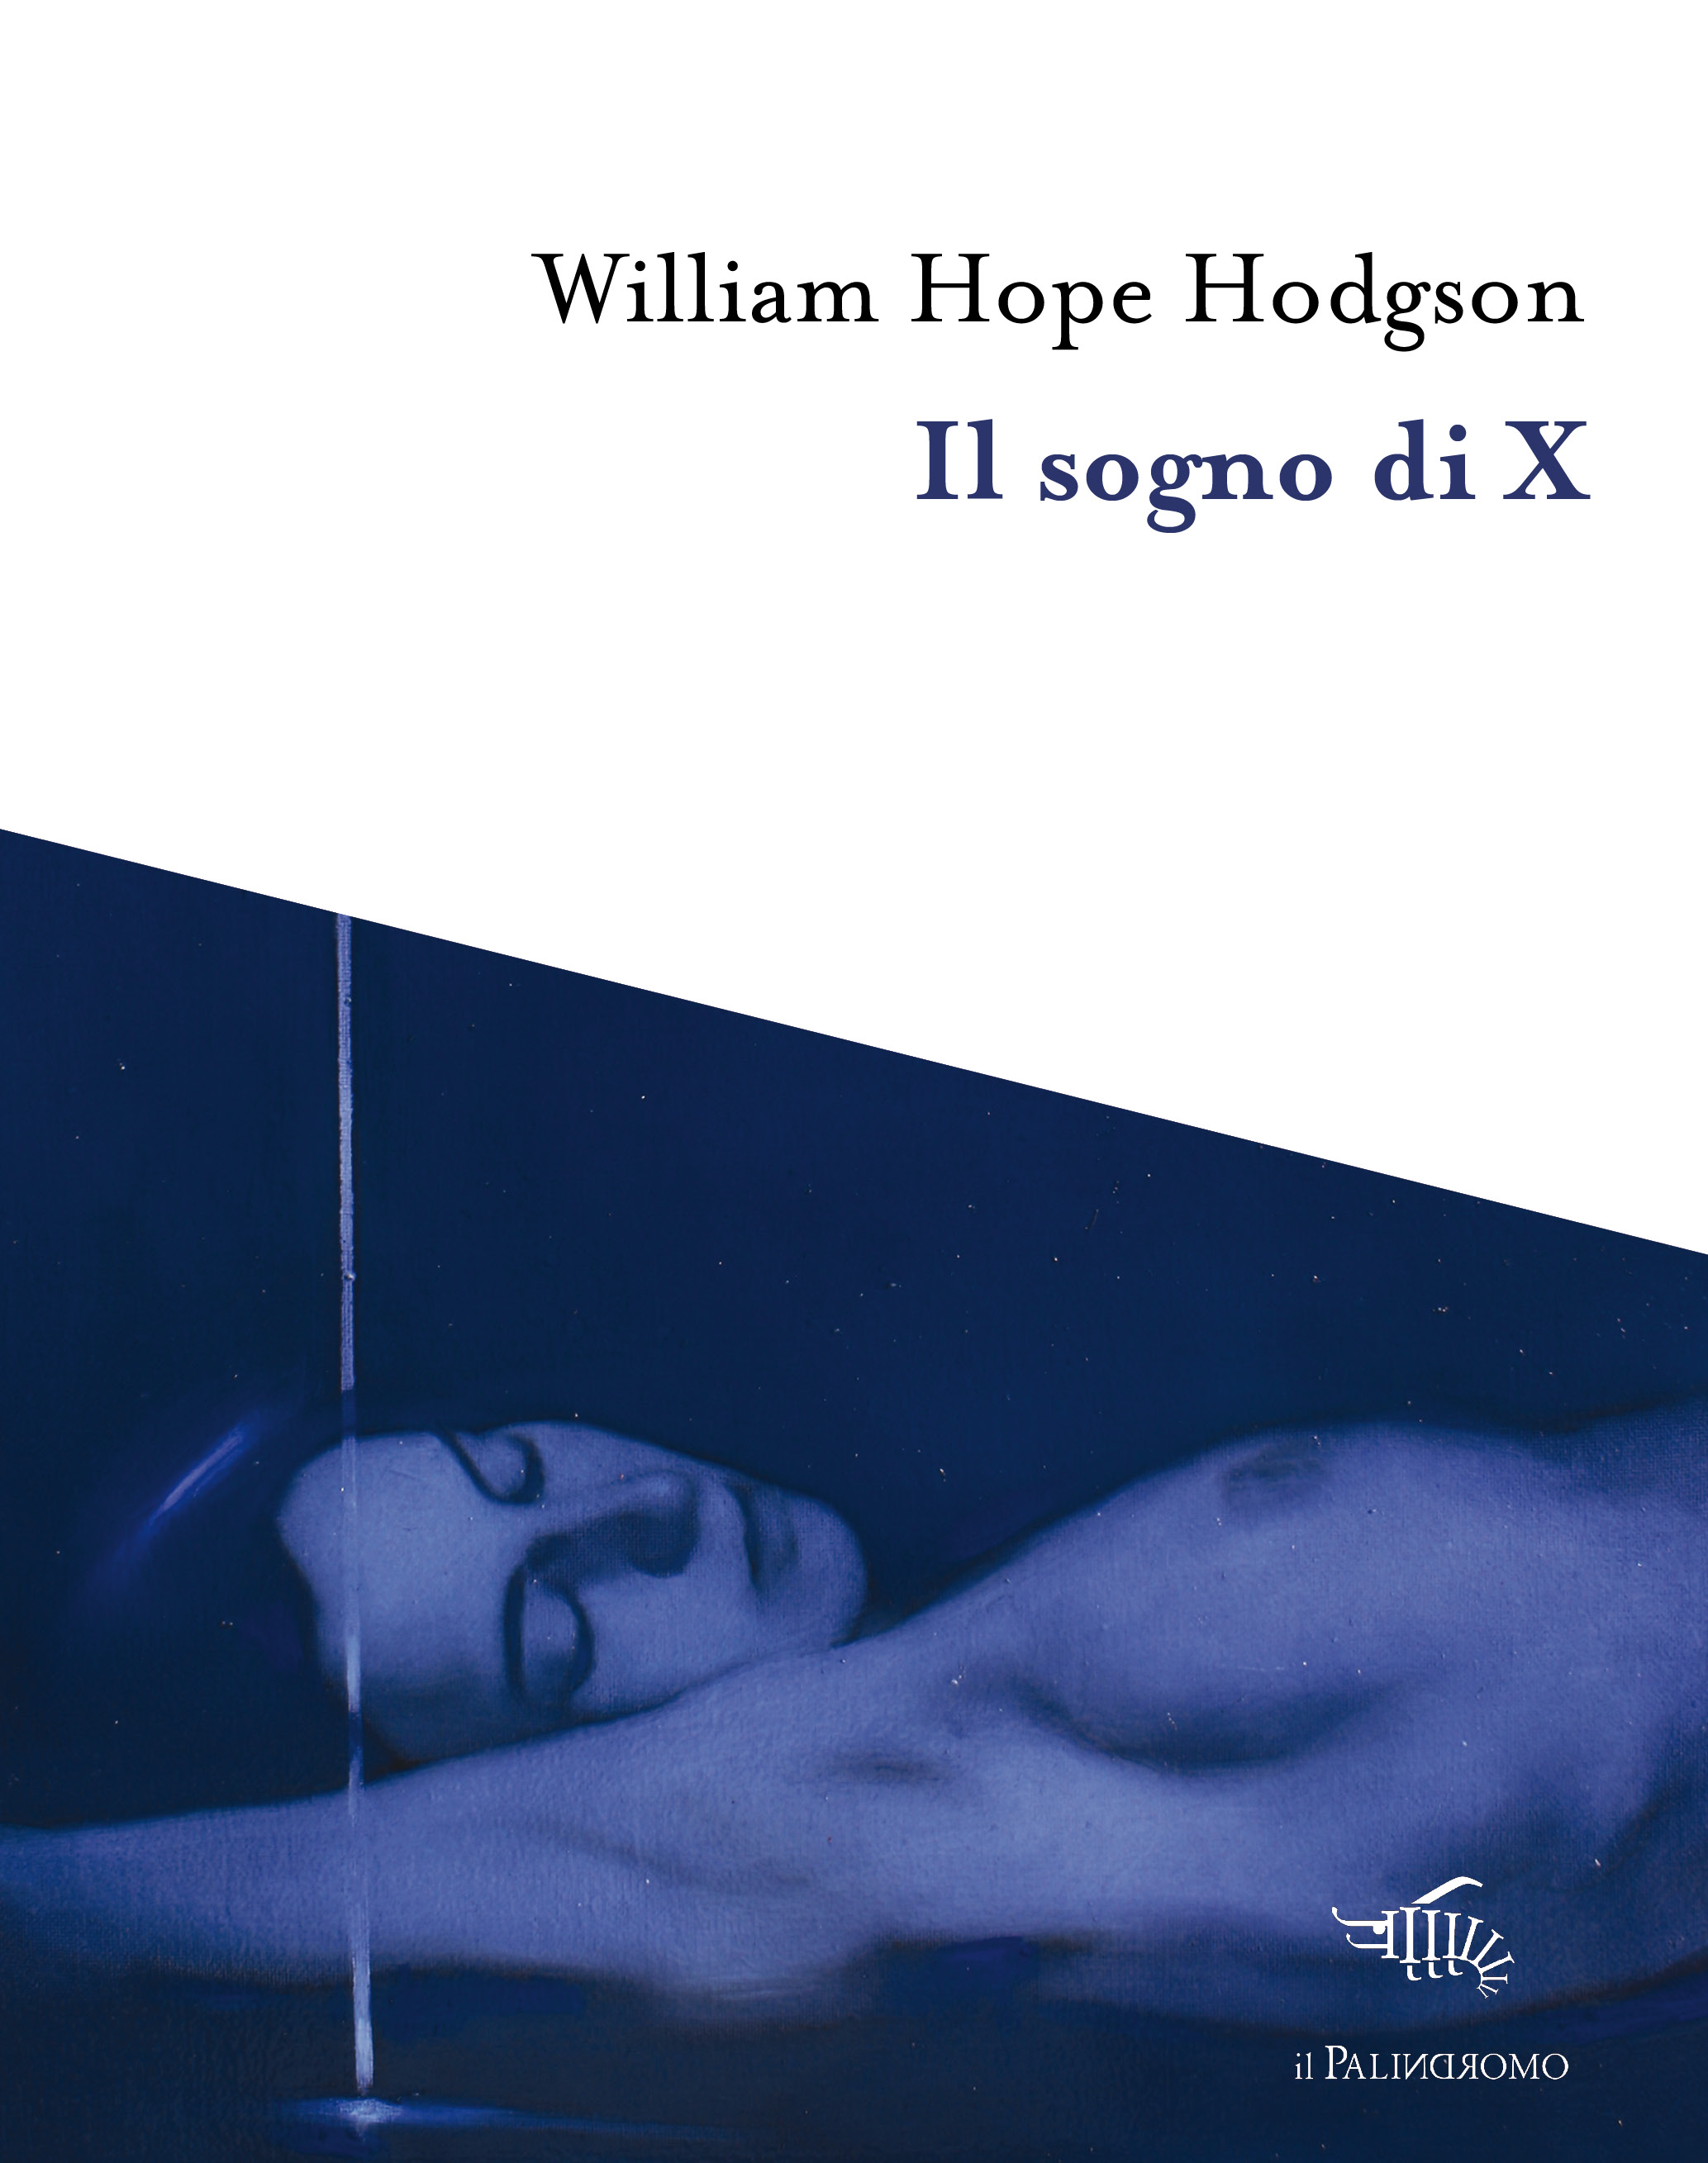 Autore: William Hope Hodgson